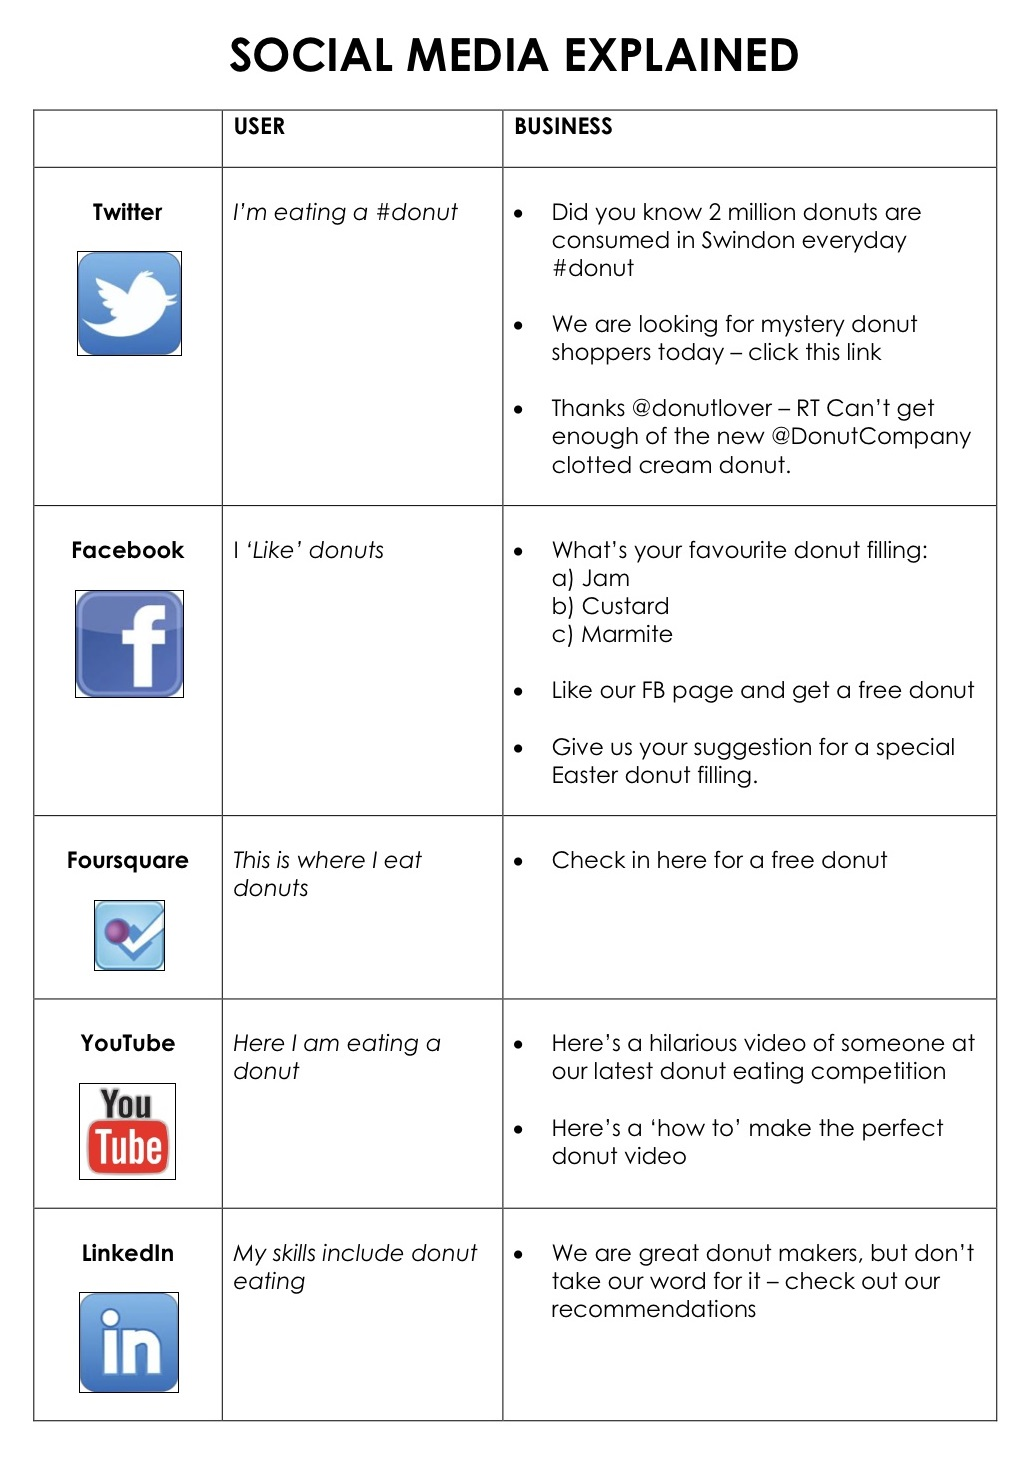 SOCIAL_MEDIA_EXPLAINED-updated